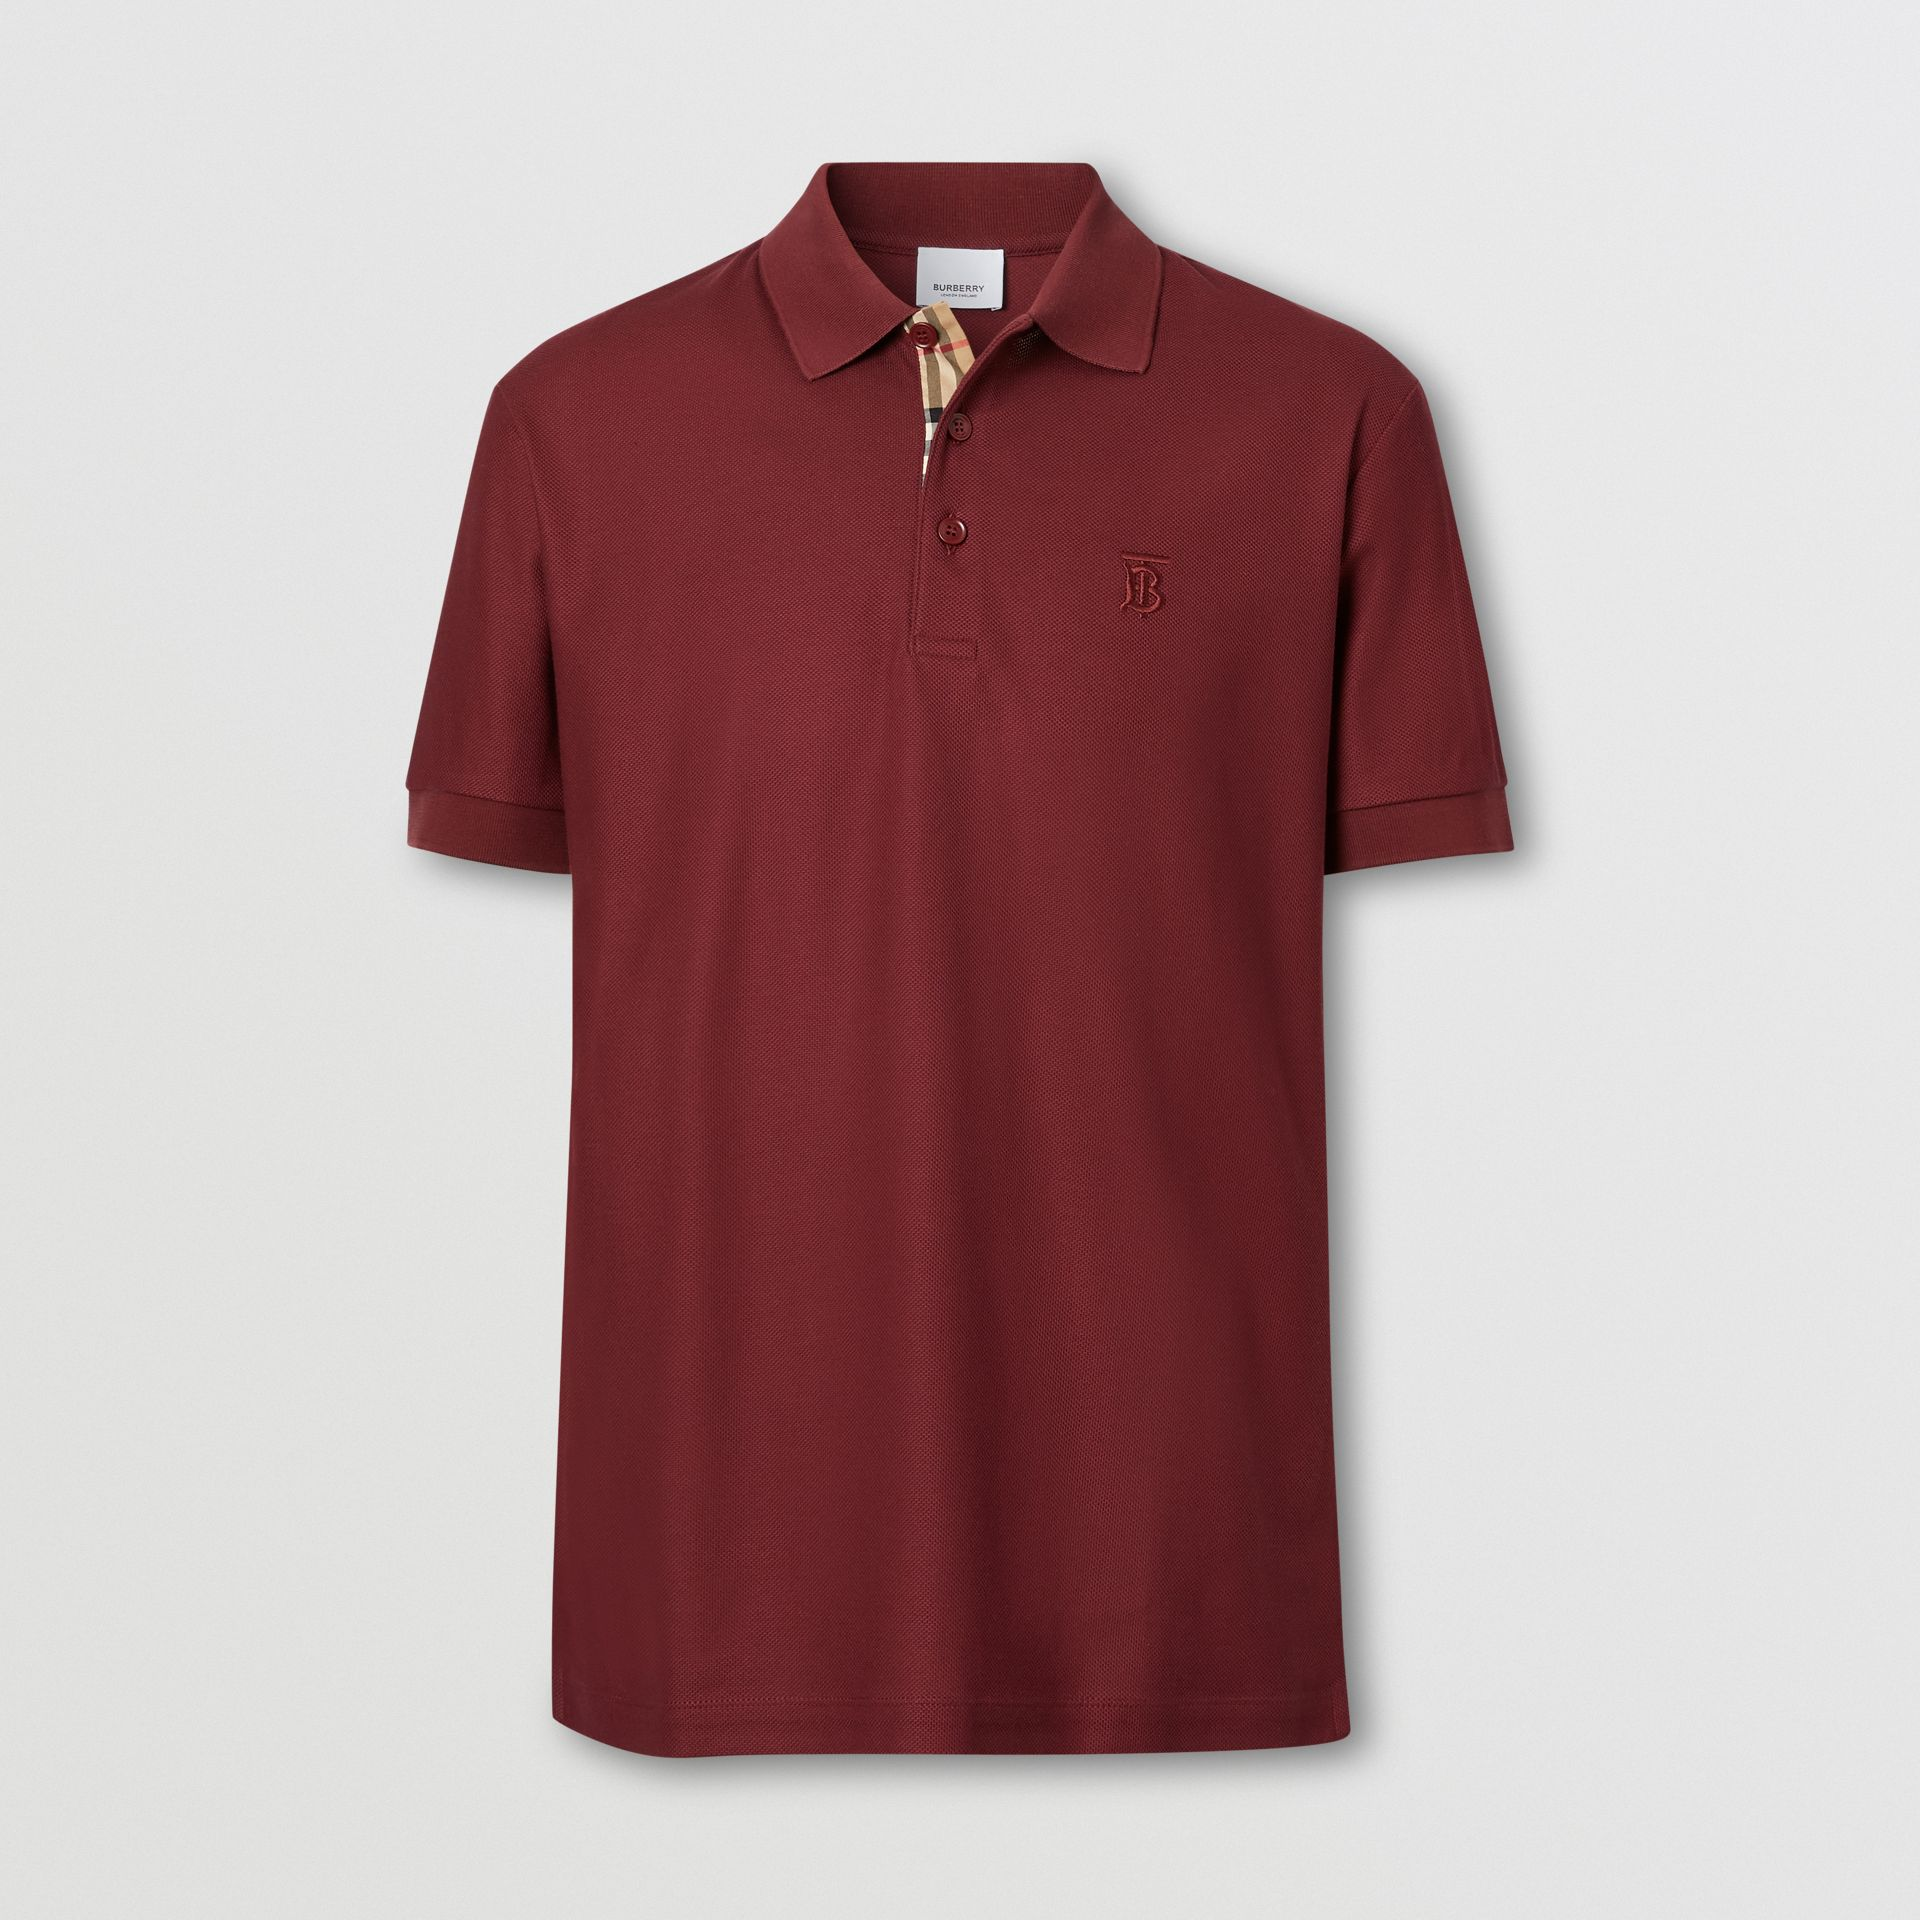 Monogram Motif Cotton Piqué Polo Shirt in Garnet - Men | Burberry - gallery image 3